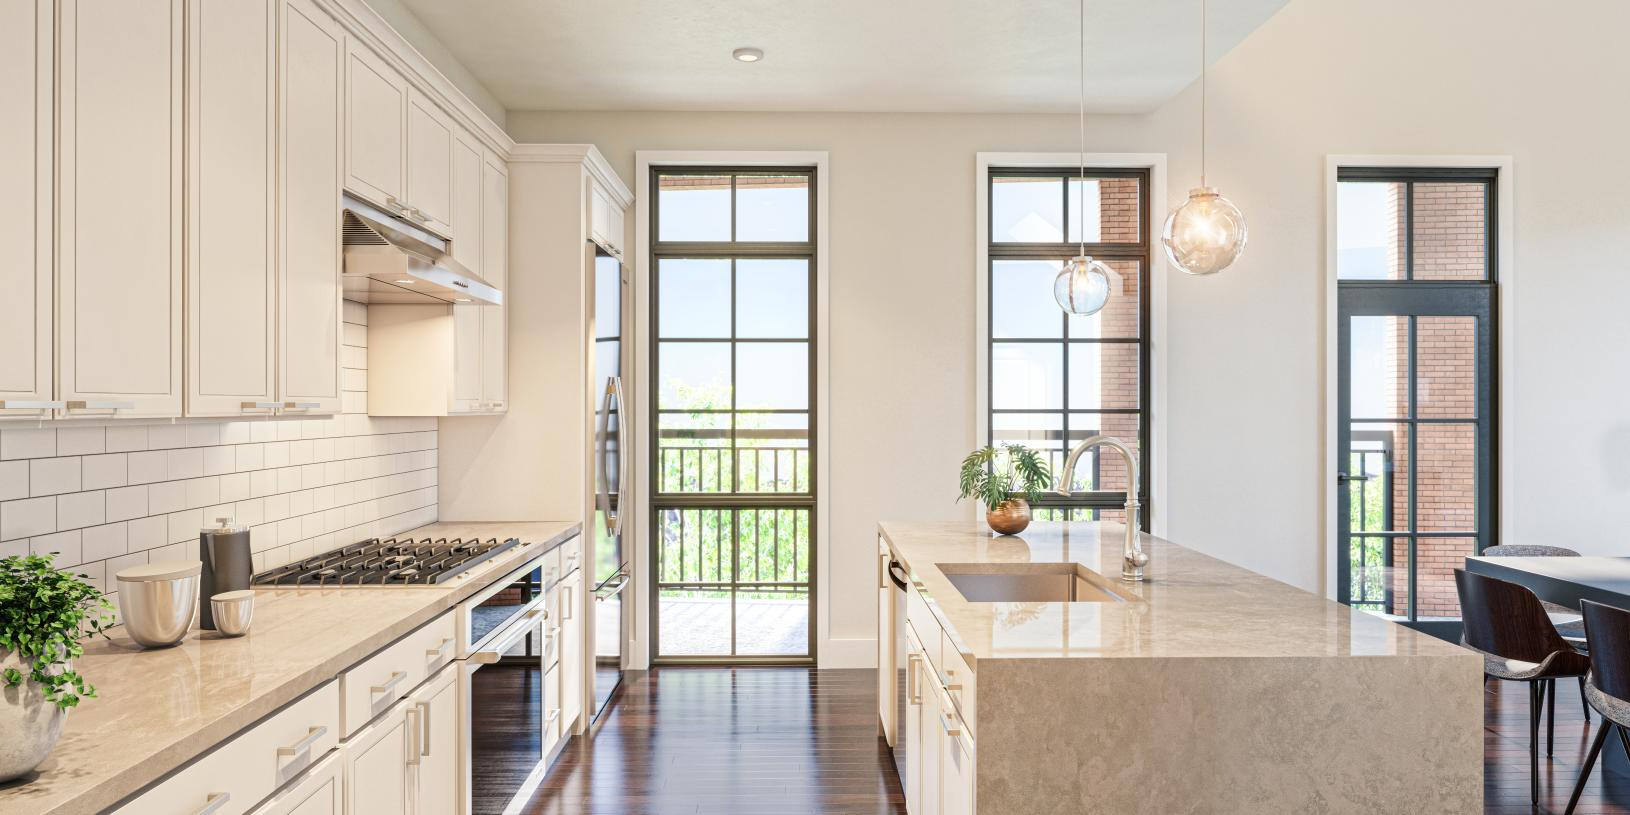 Stunning kitchen with large windows for natural light